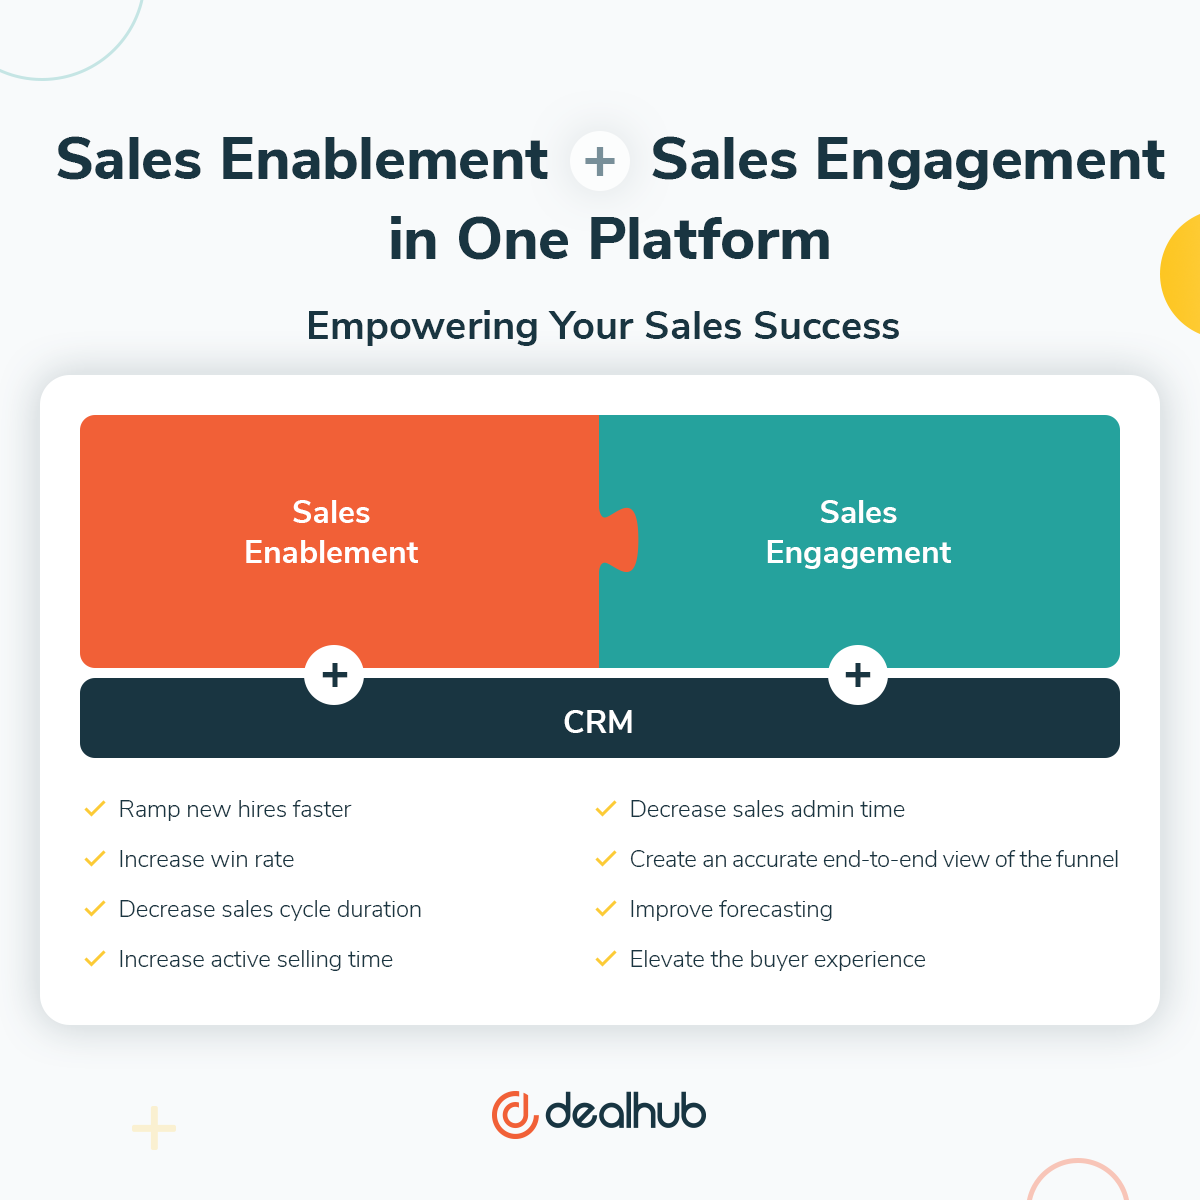 Sales Enablement and Sales Engagement work with CRM to improve Sales KPIs